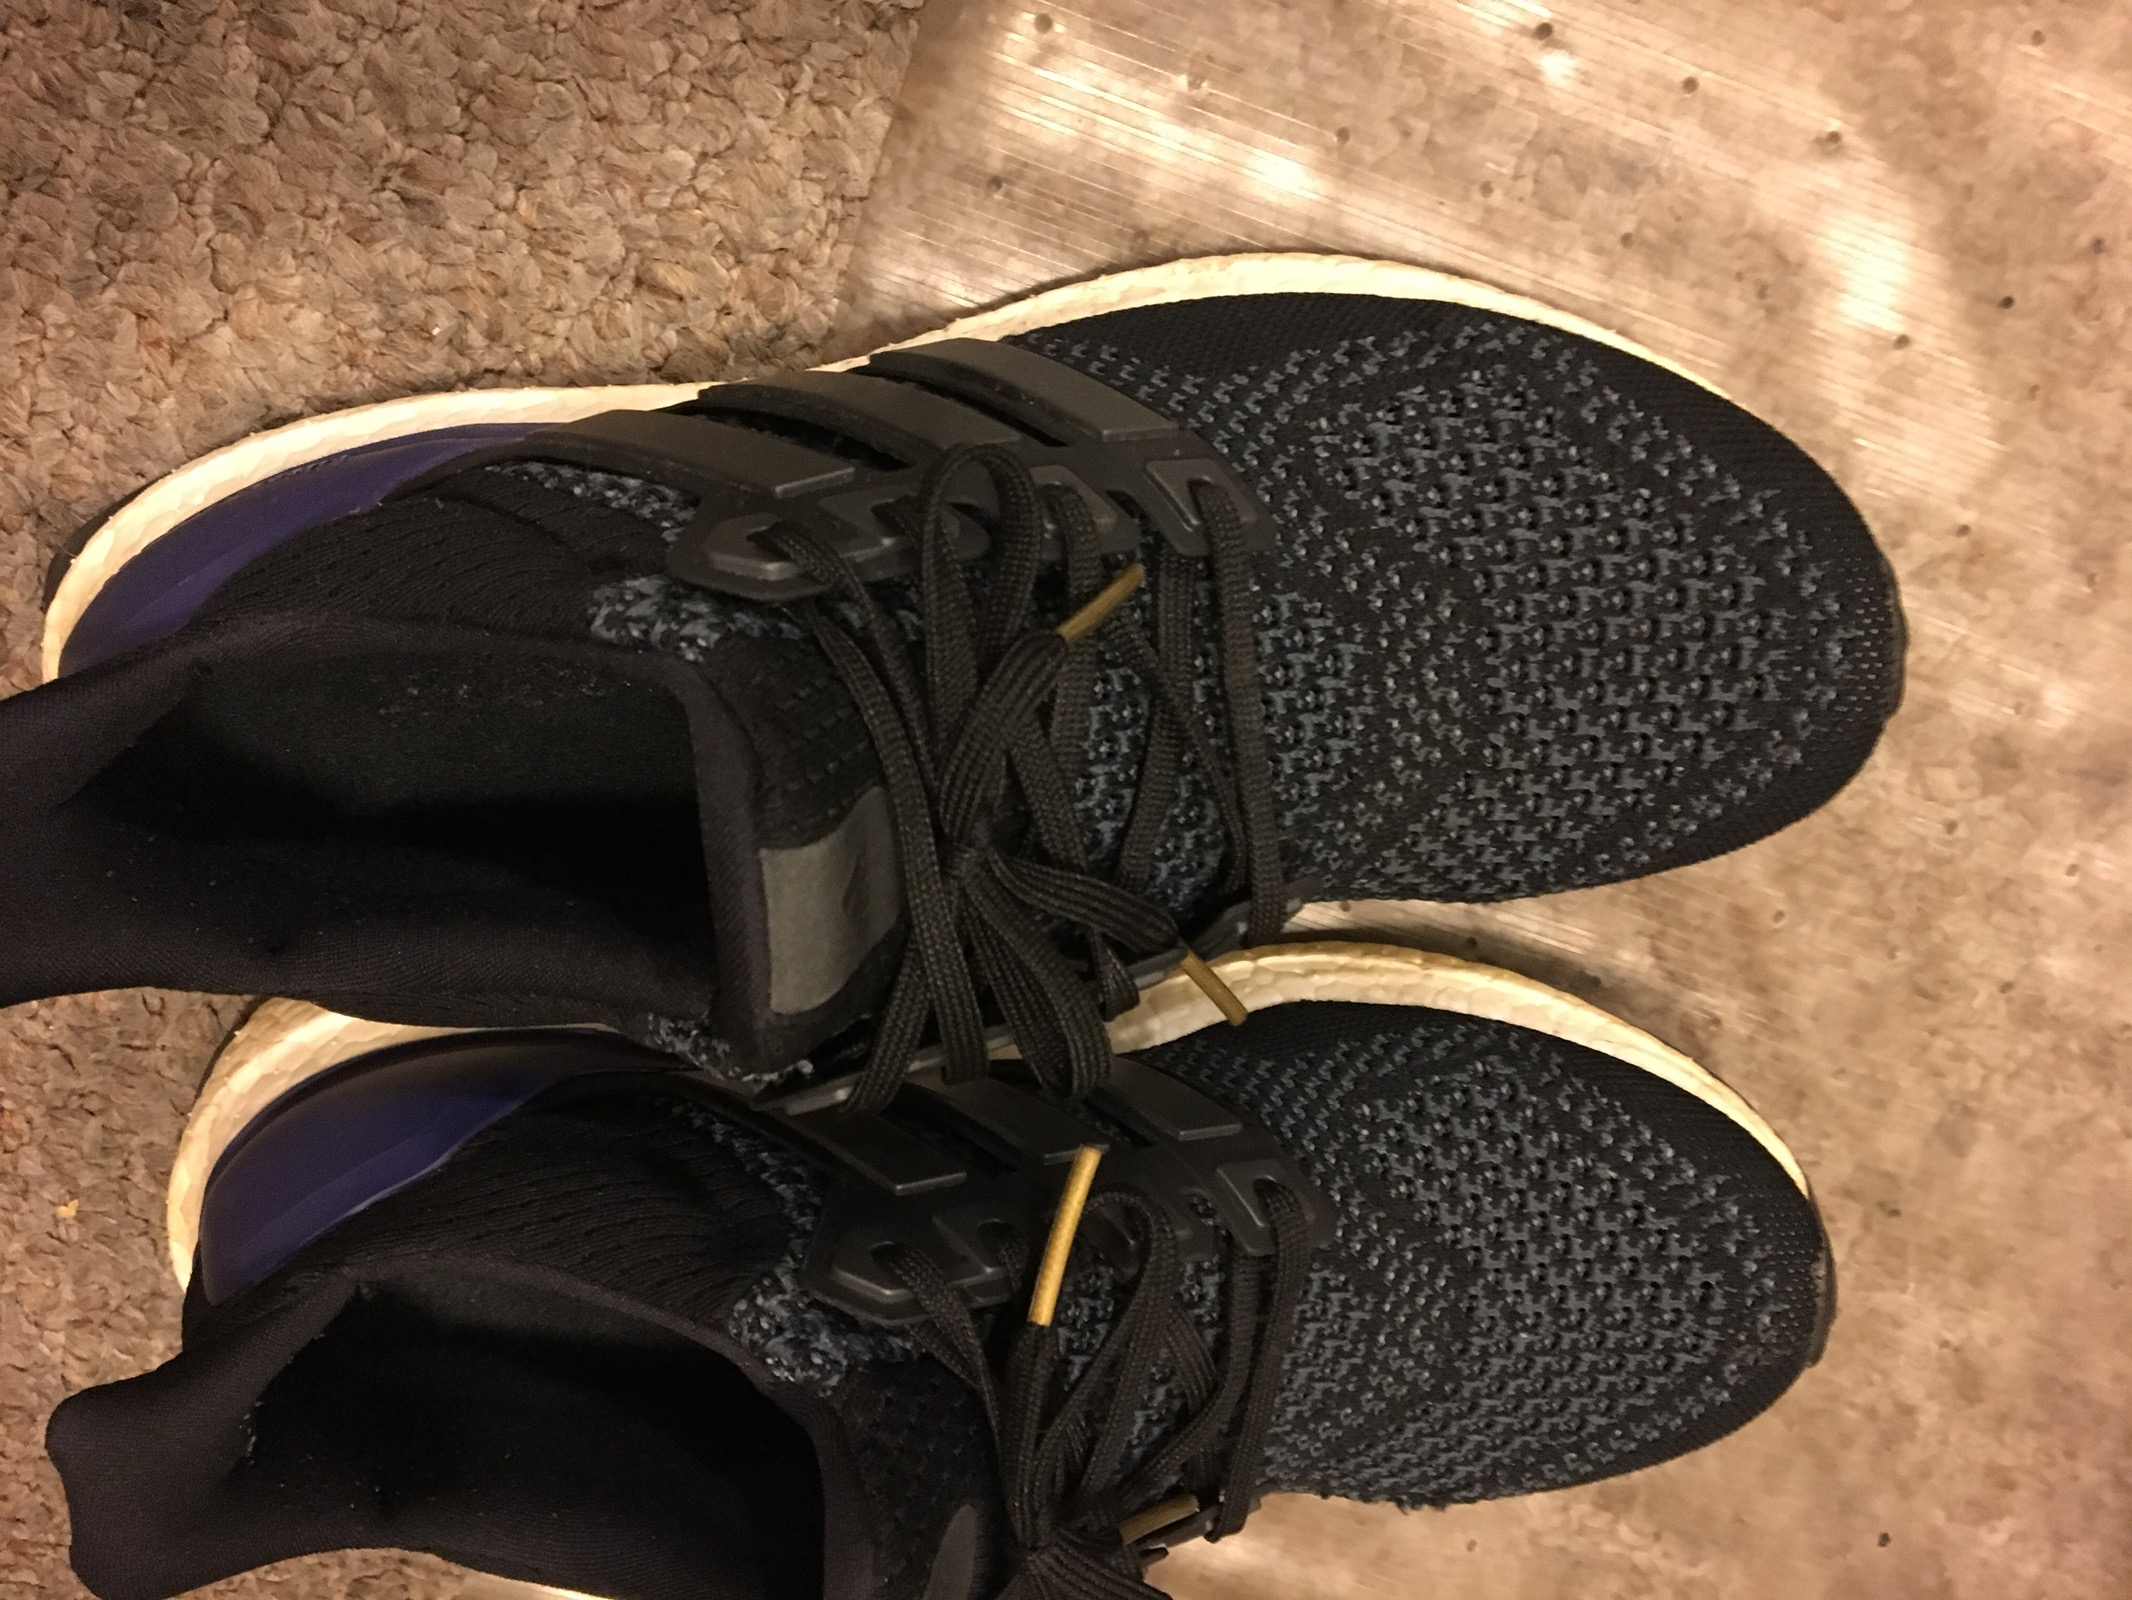 2008fdcad815 Adidas Adidas Ultra Boost OG Size 9 - Low-Top Sneakers for Sale ...